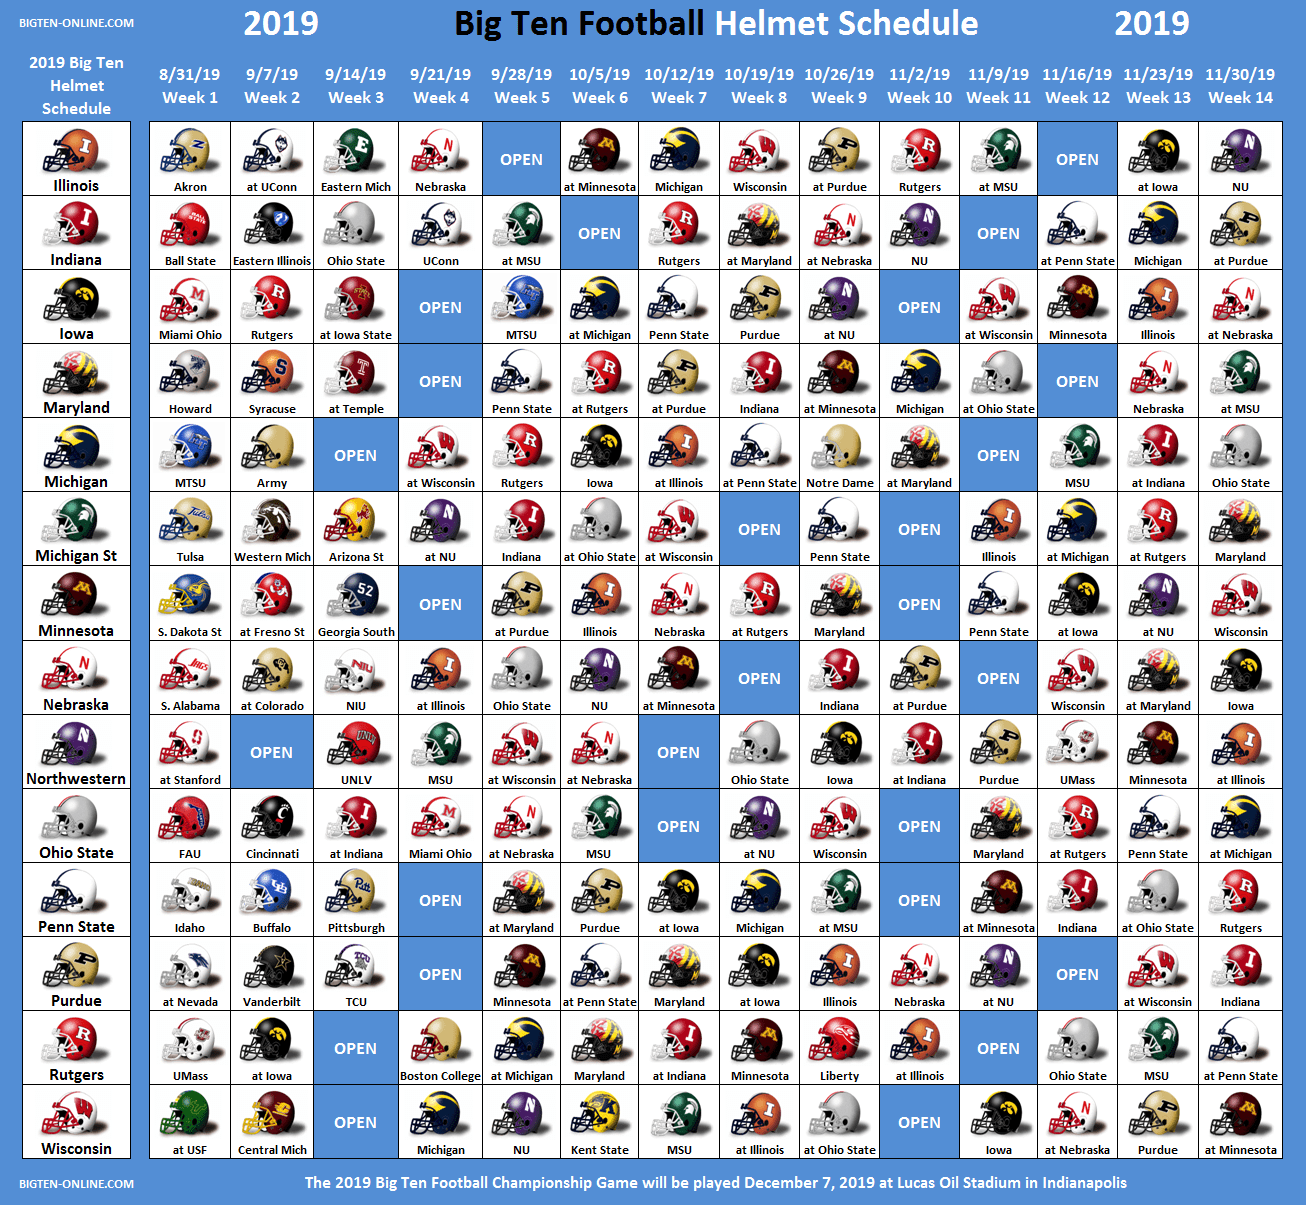 2019 Big Ten Football Helmet Schedule